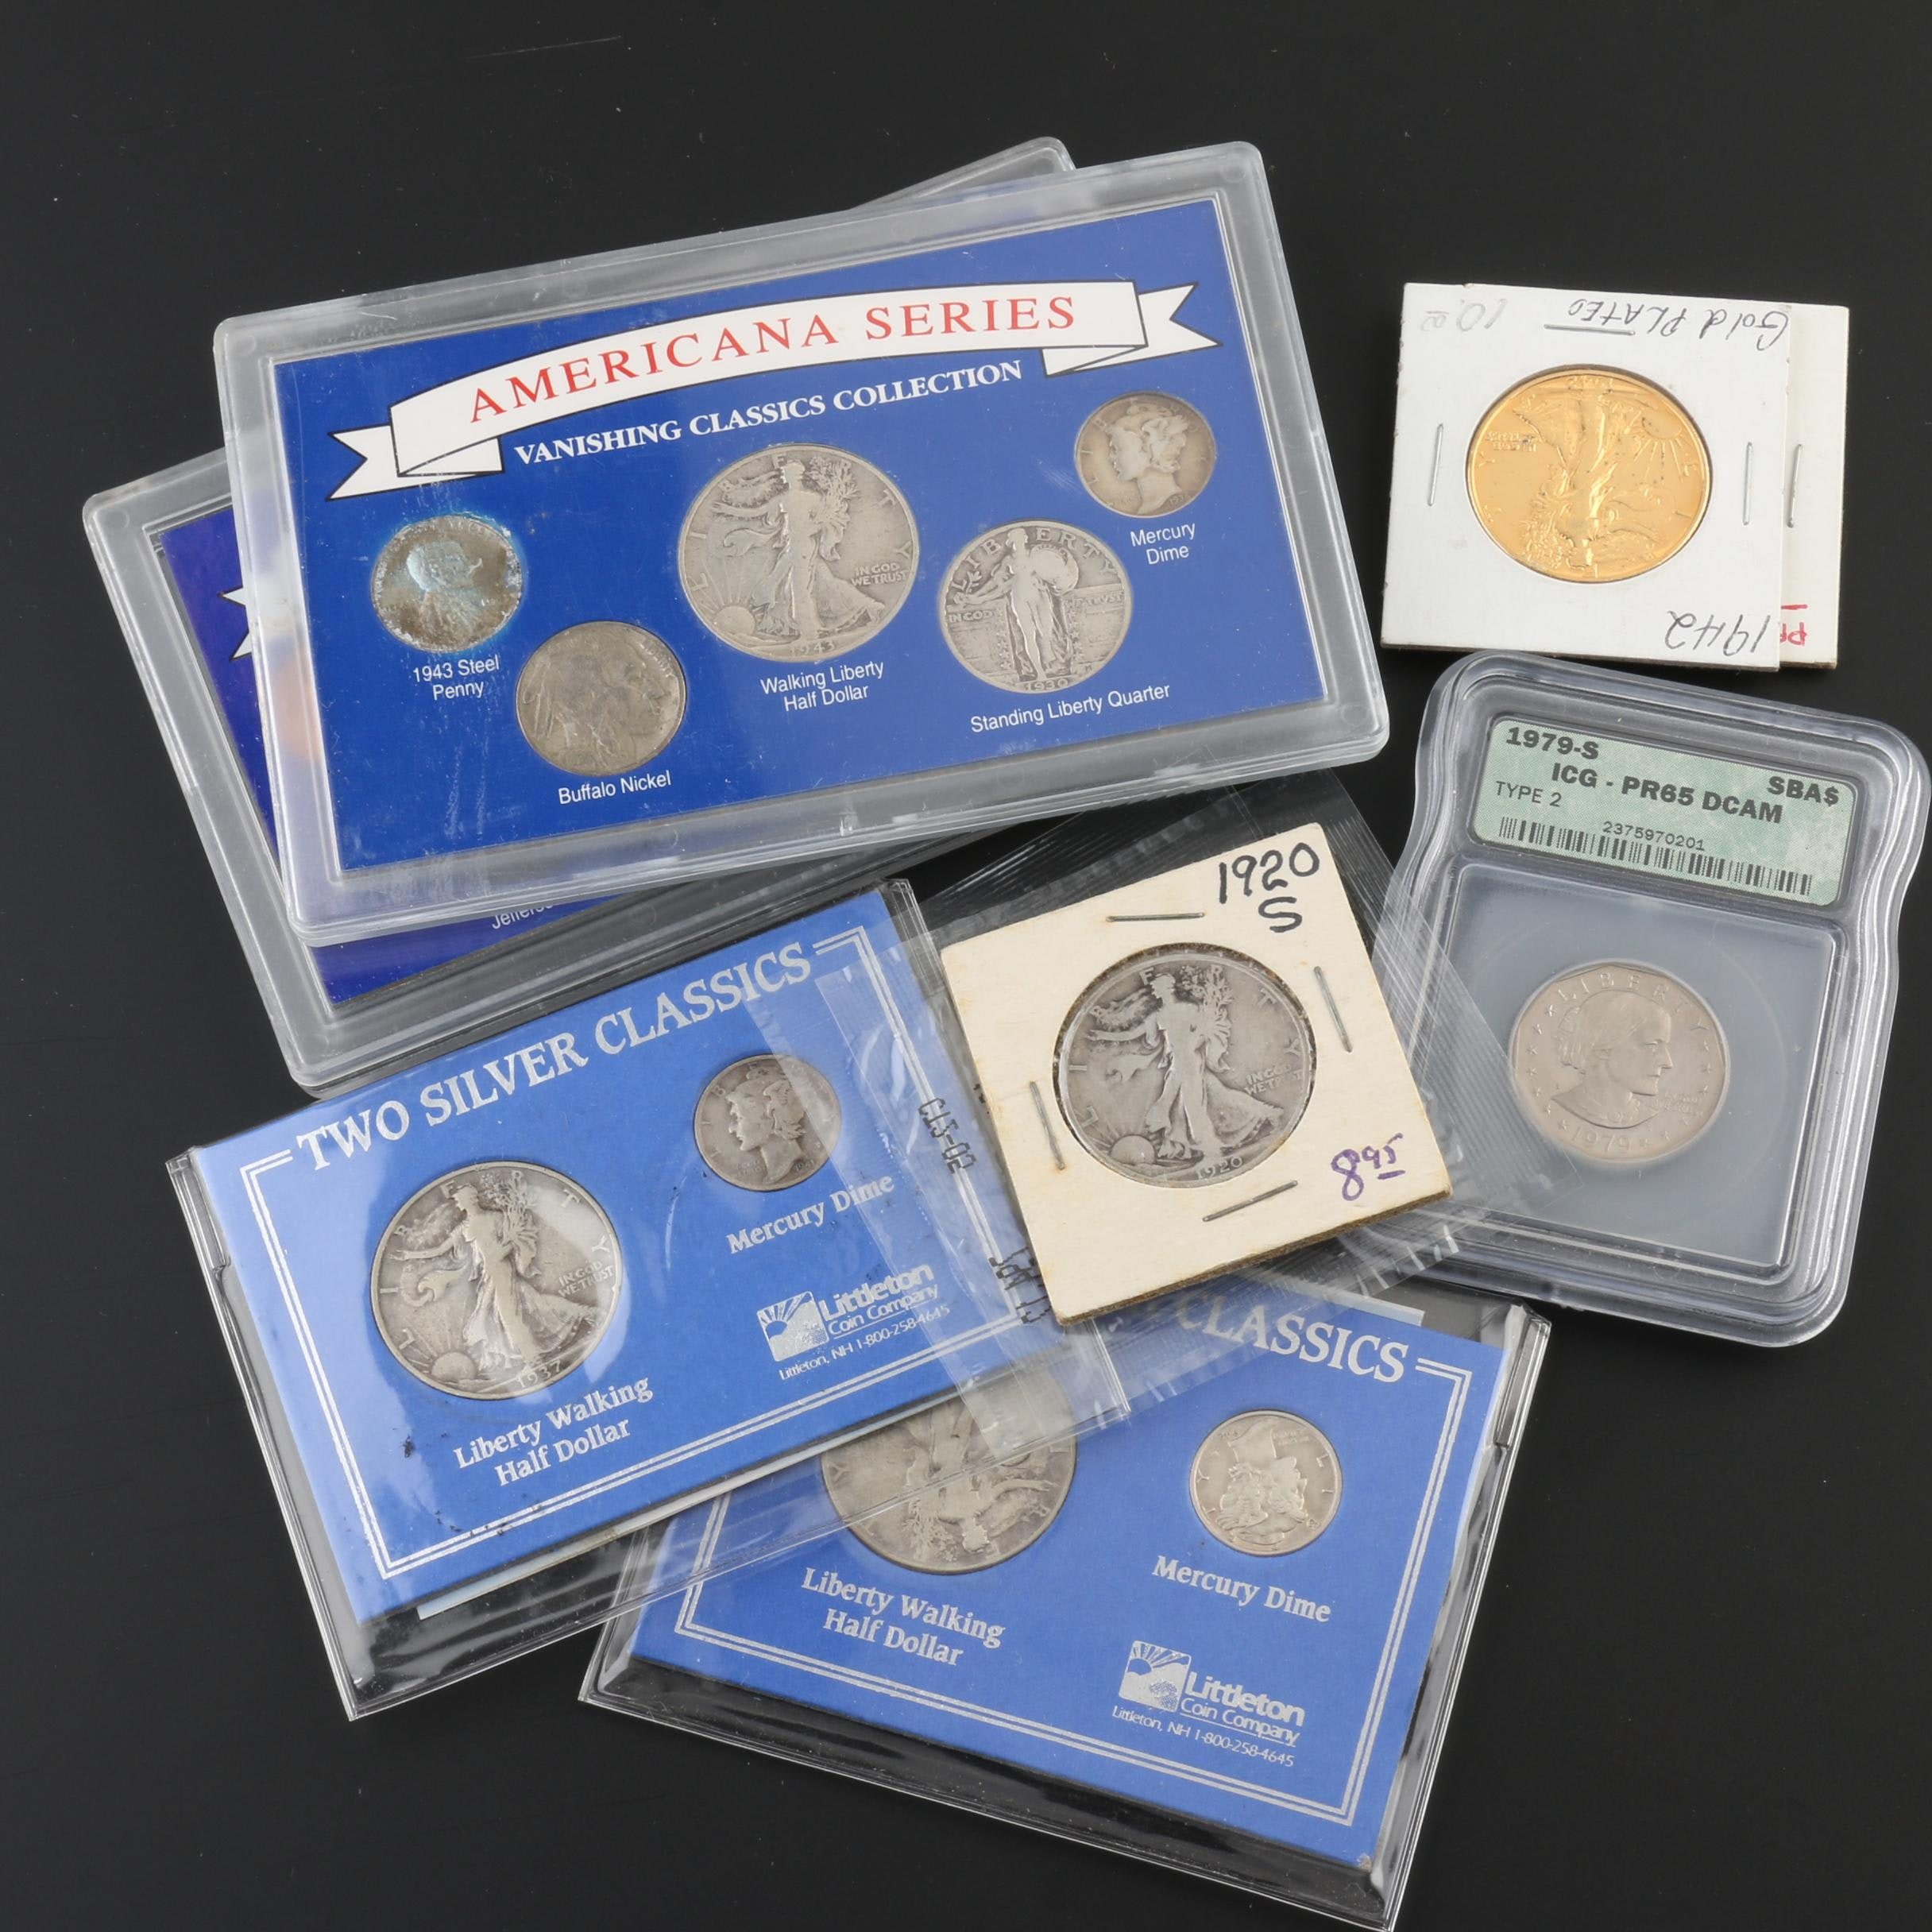 Assortment of Vintage U.S. Coins, Including Many Silver Coins